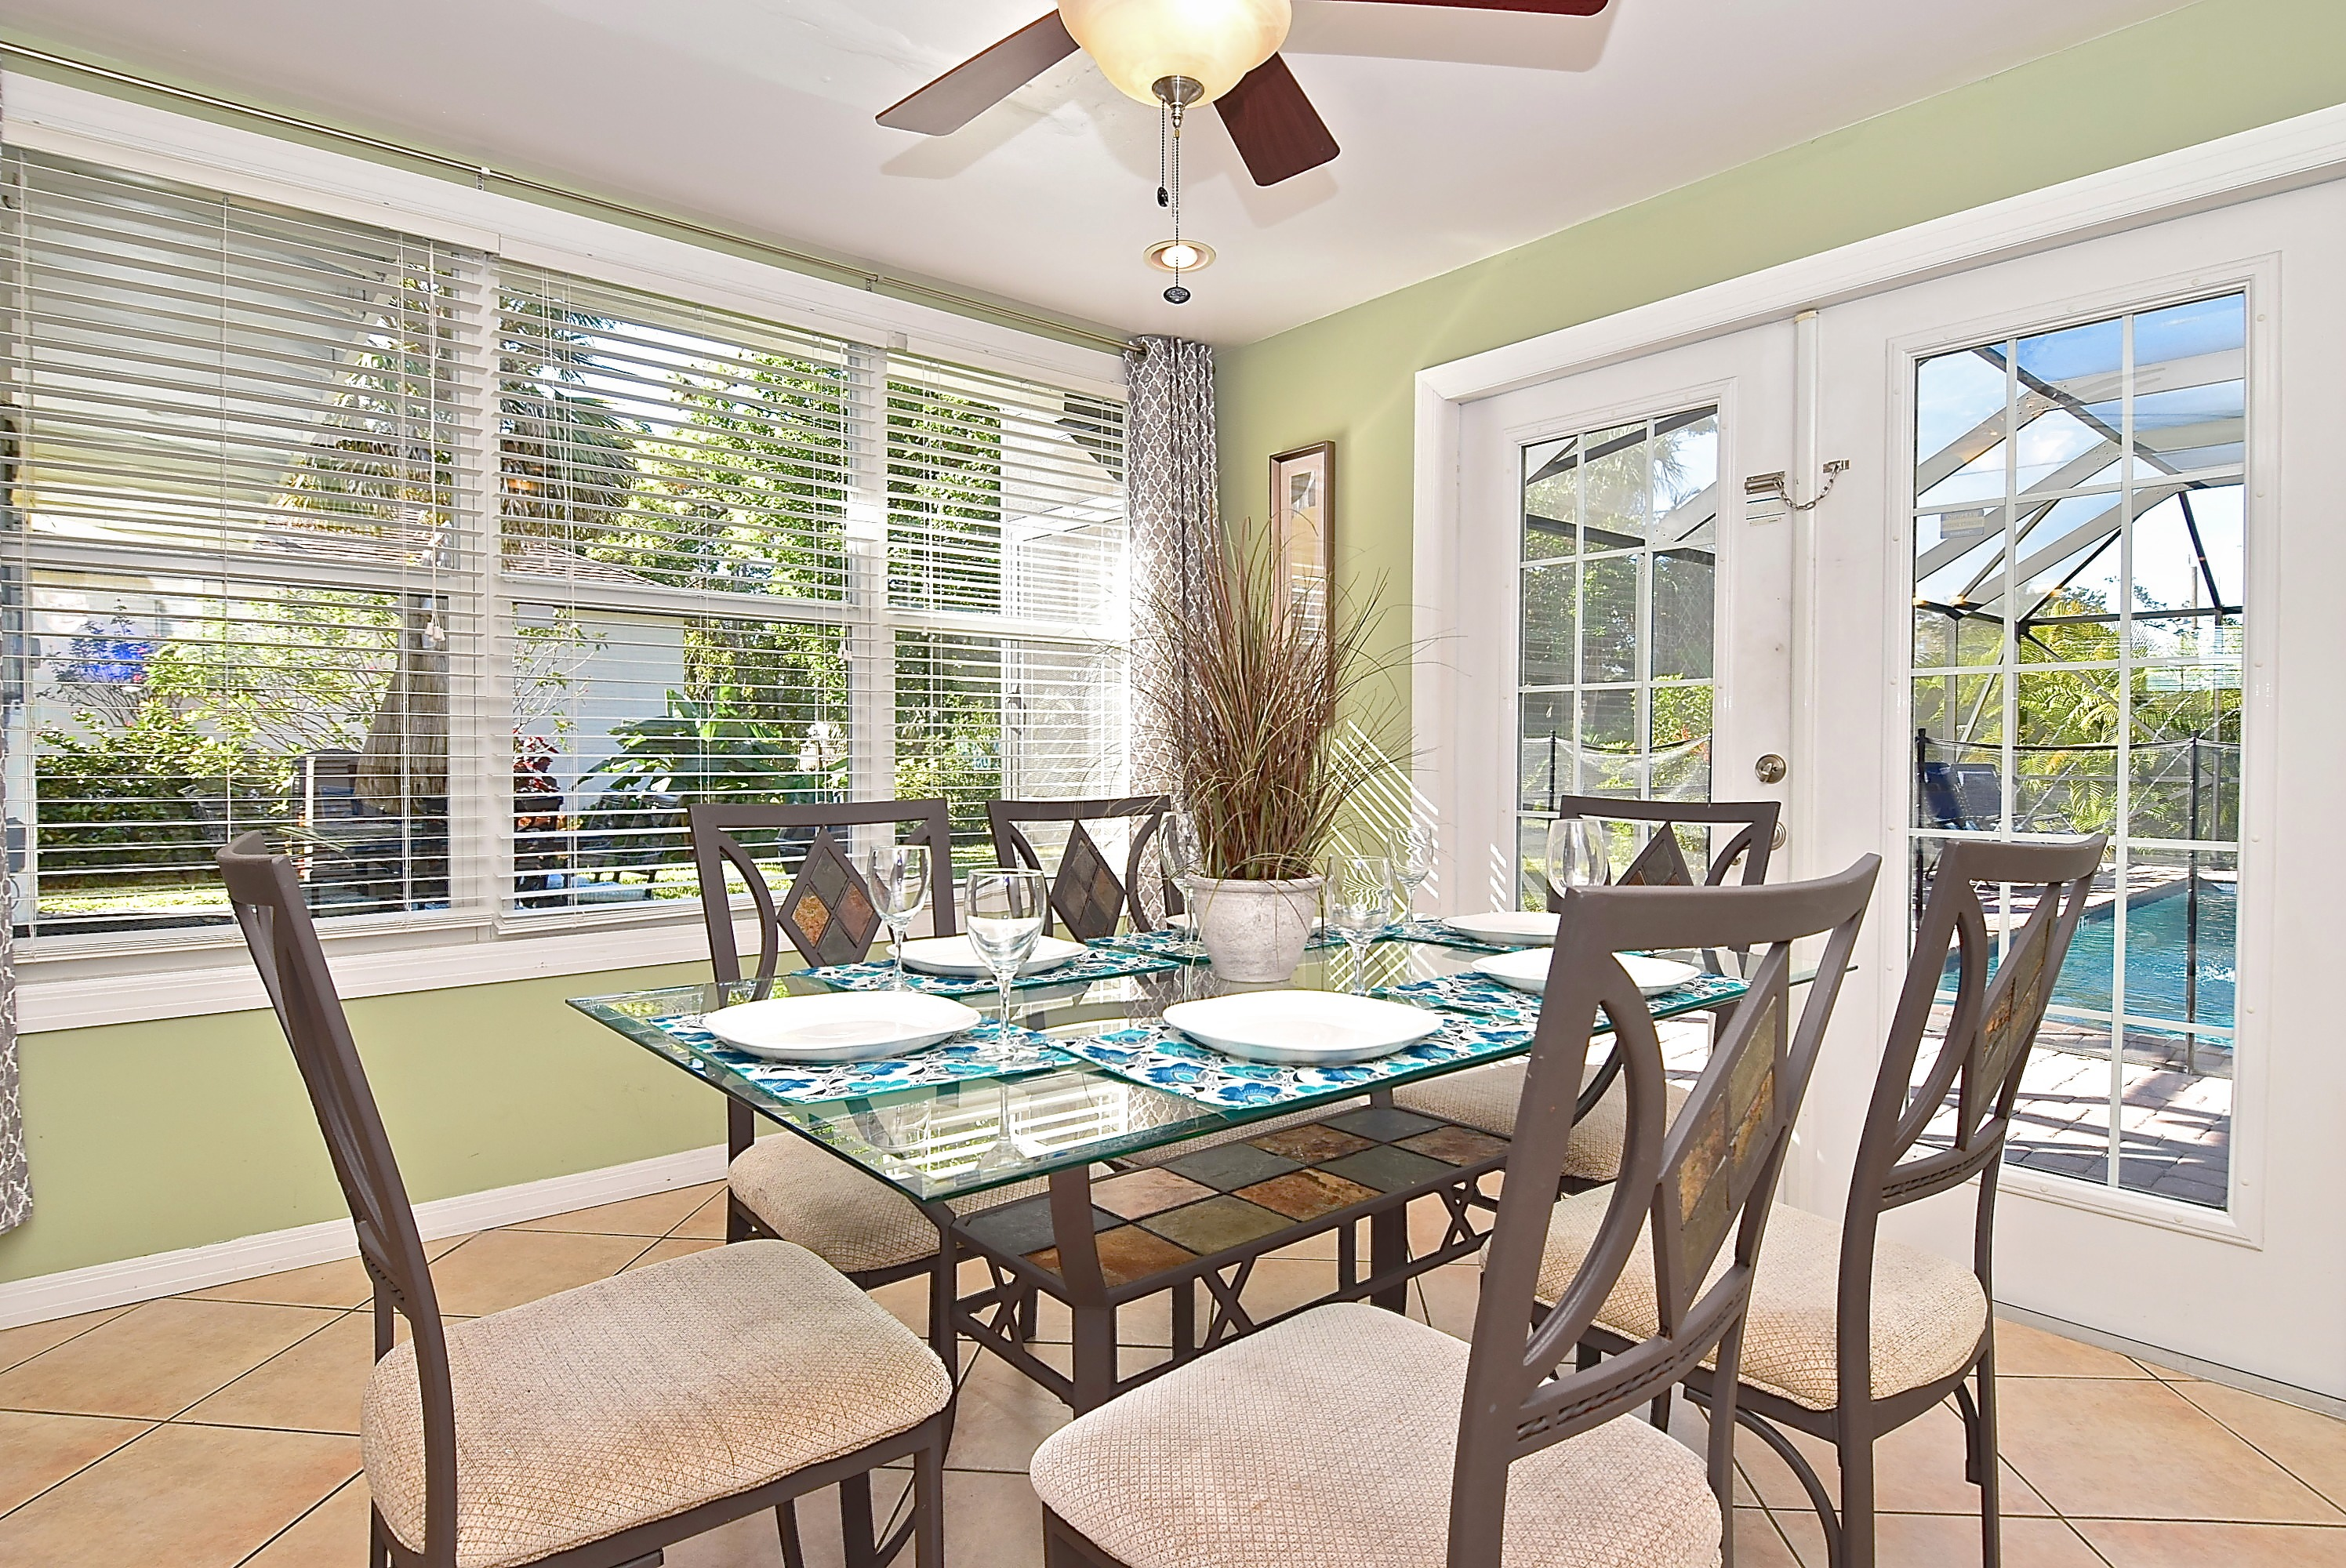 1120 Nokomis Ave S Home Vacation Rental In Venice (Florida)   RedAwning